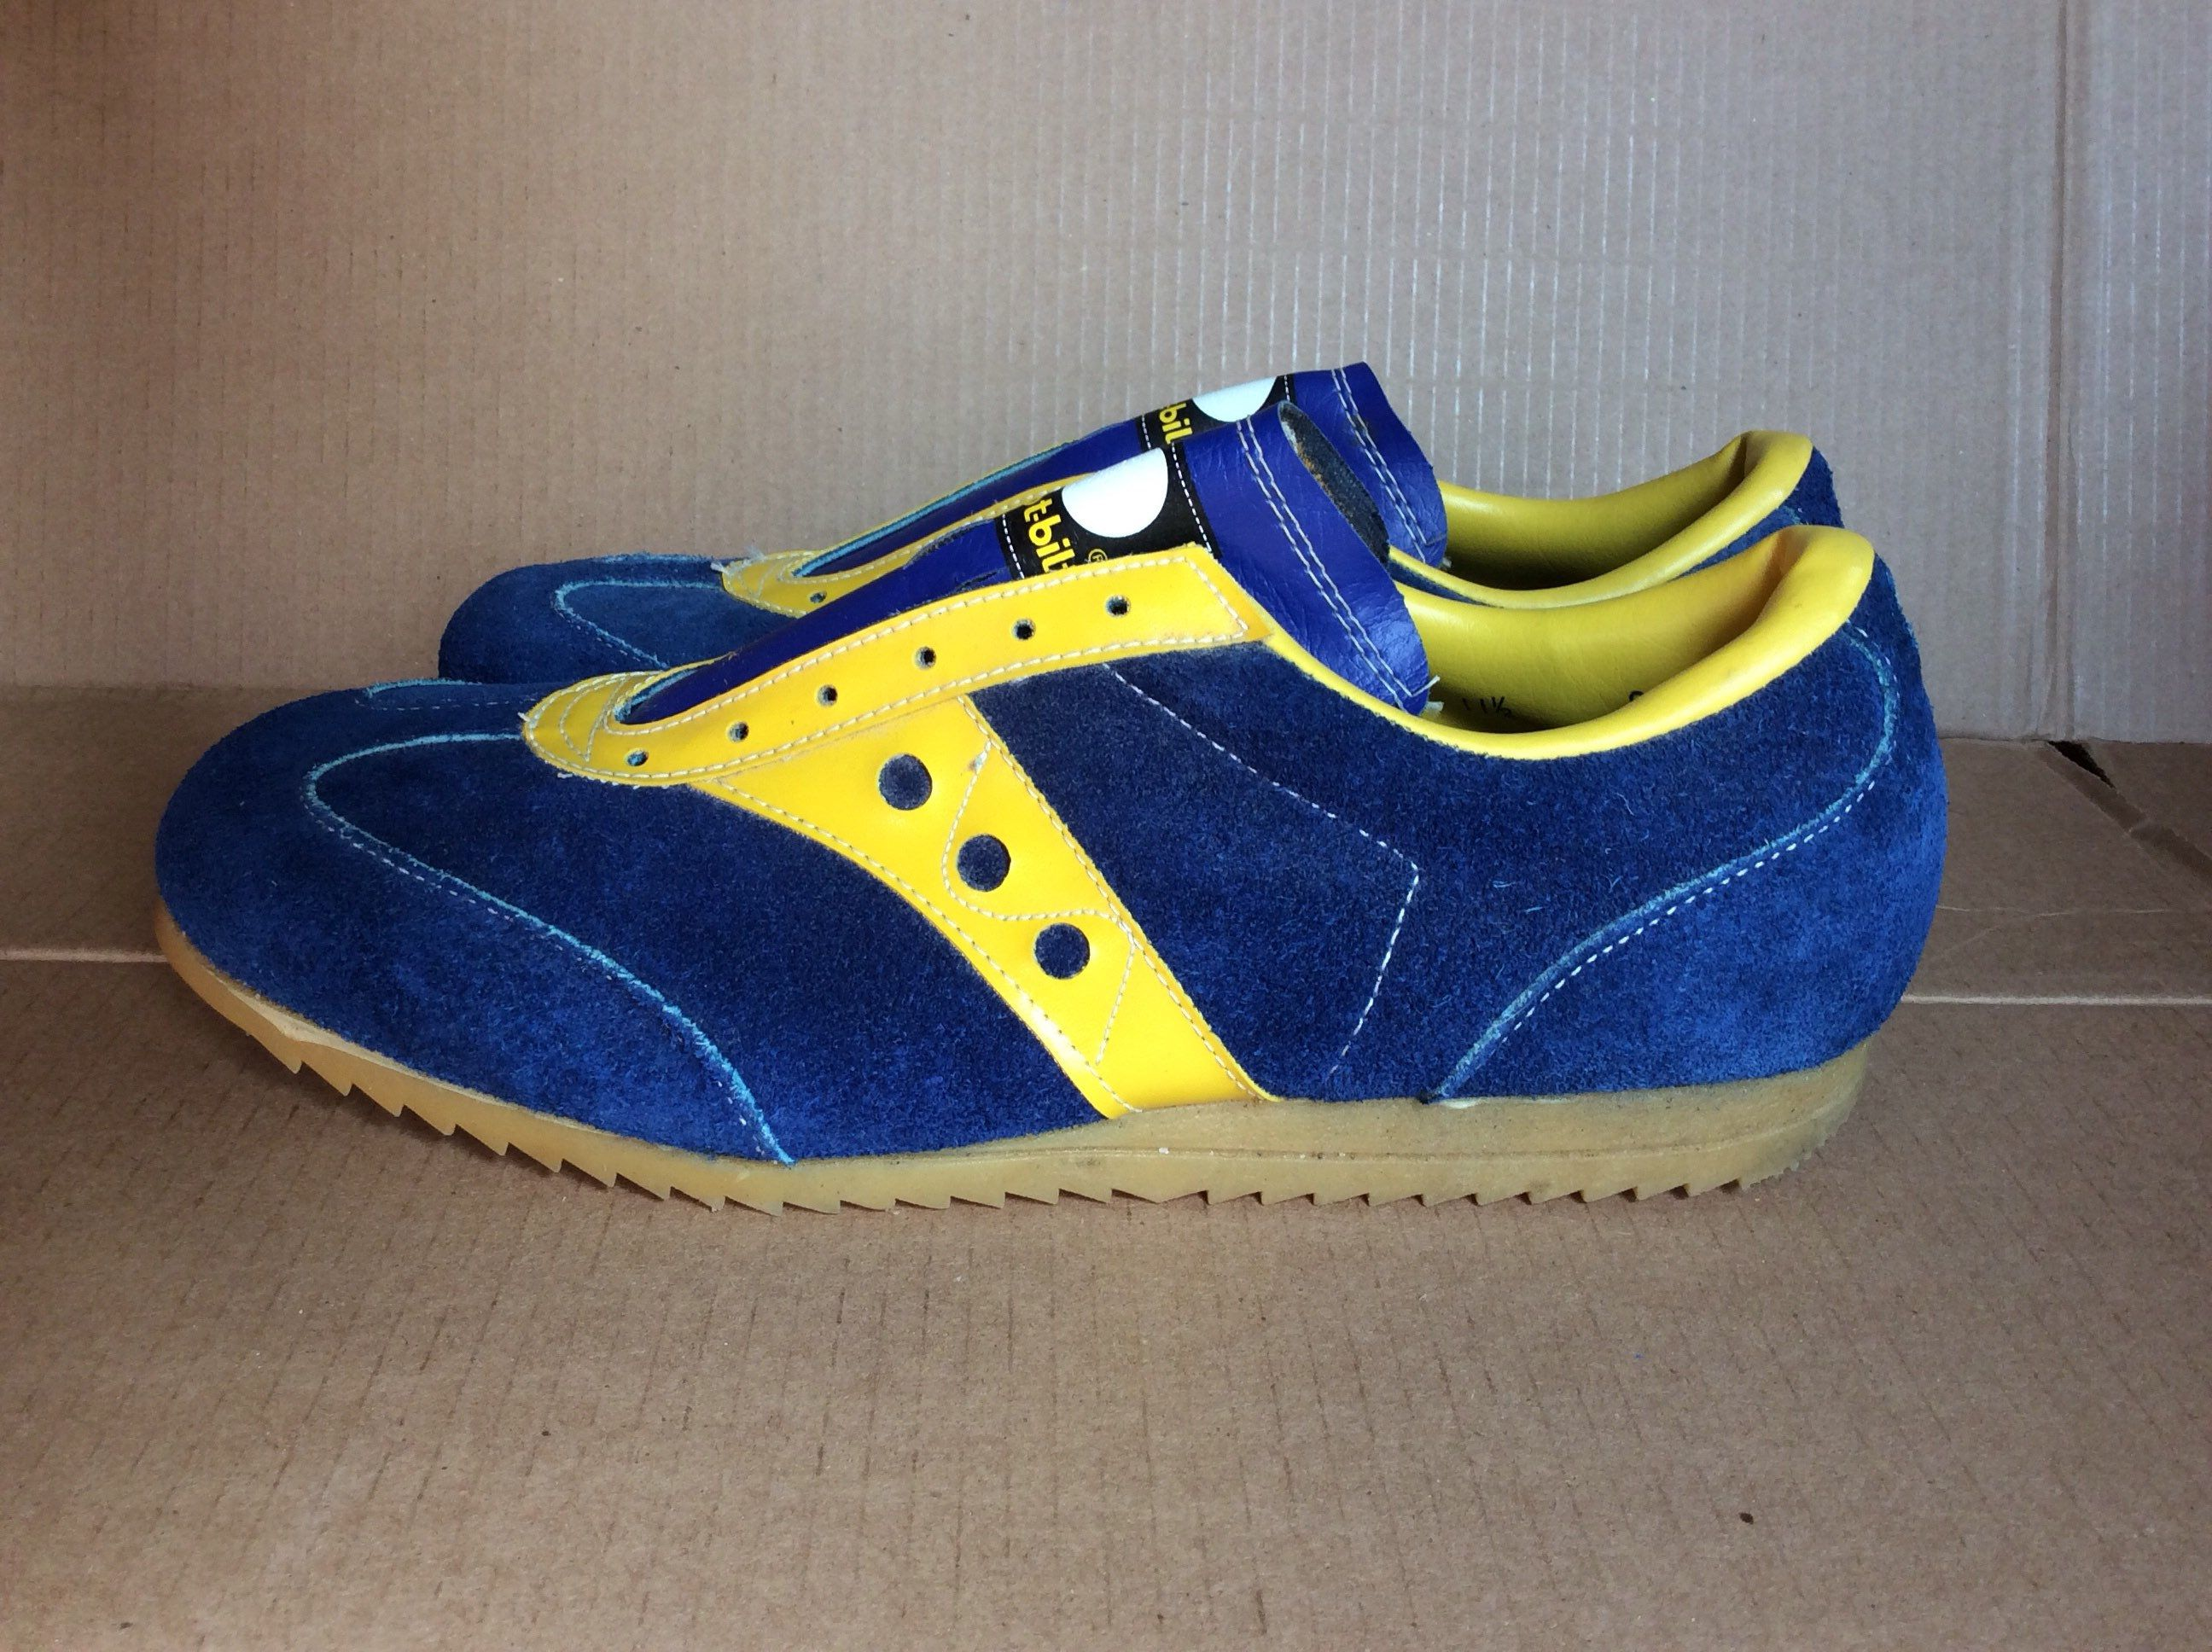 58724fe690288 1970s suede leather track shoes sneakers size 11.5 blue yellow ...